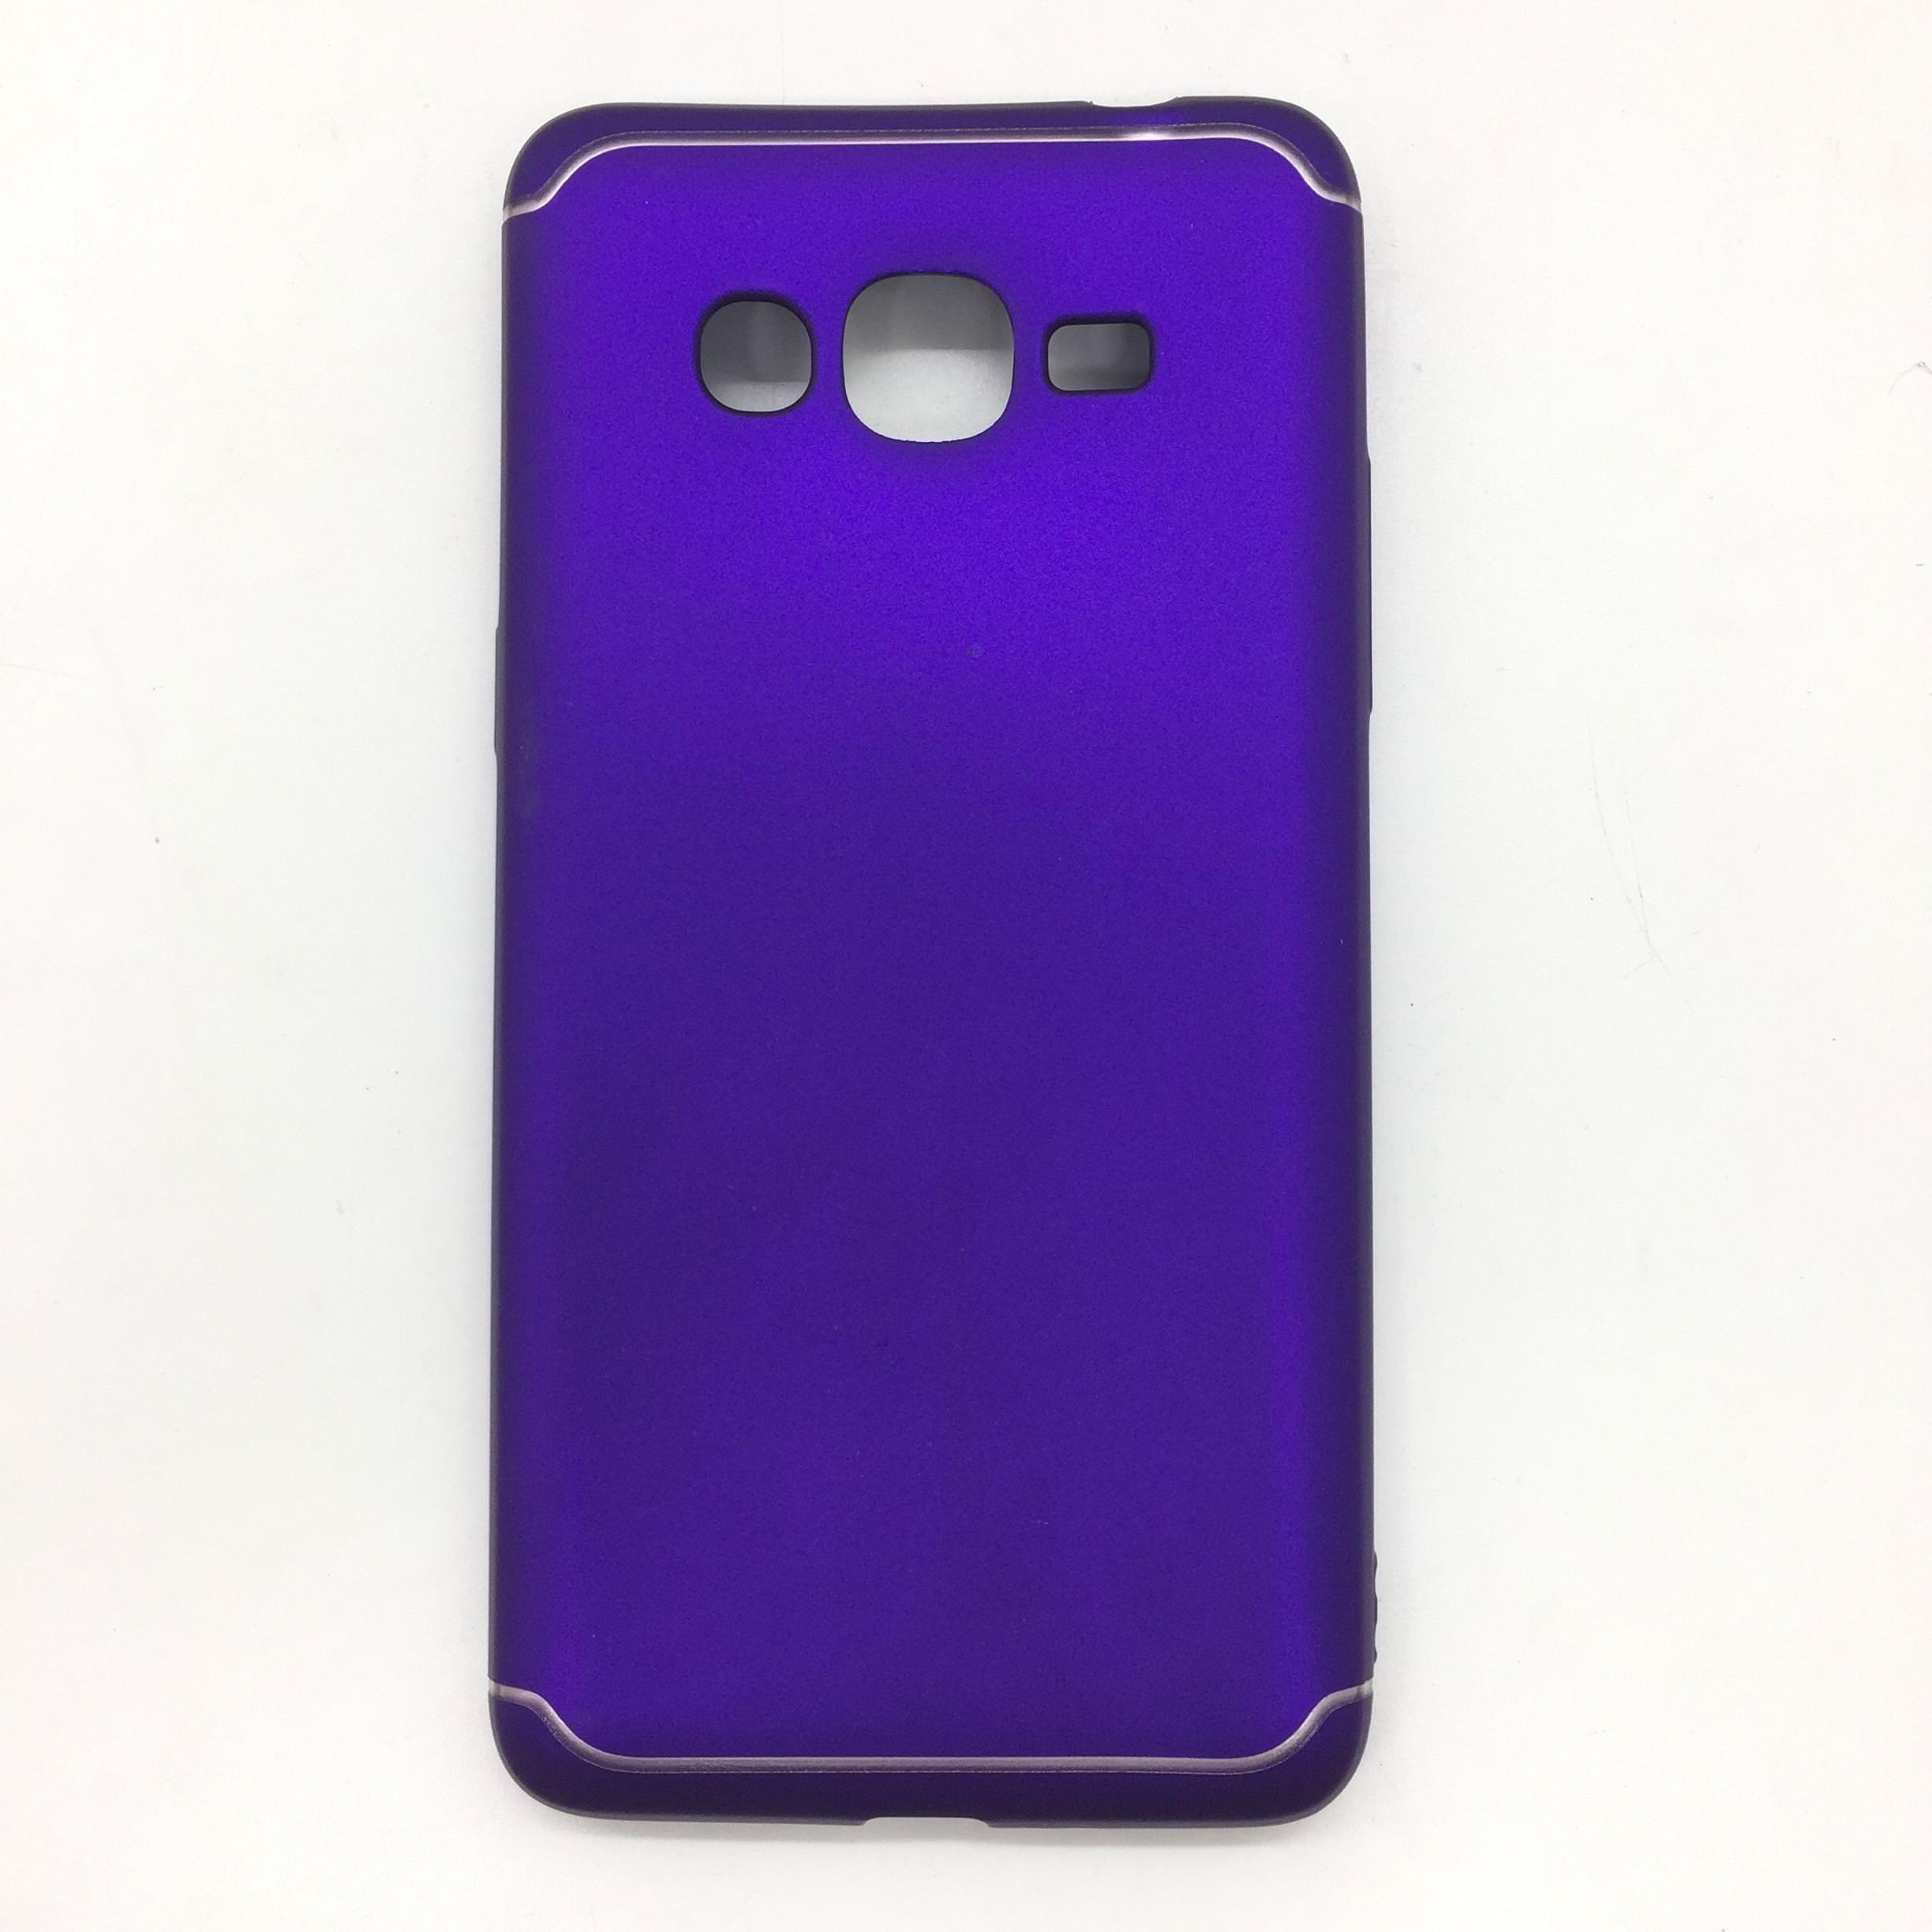 TPU Electro Plated Case For Samsung Galaxy J2 Prime Violet